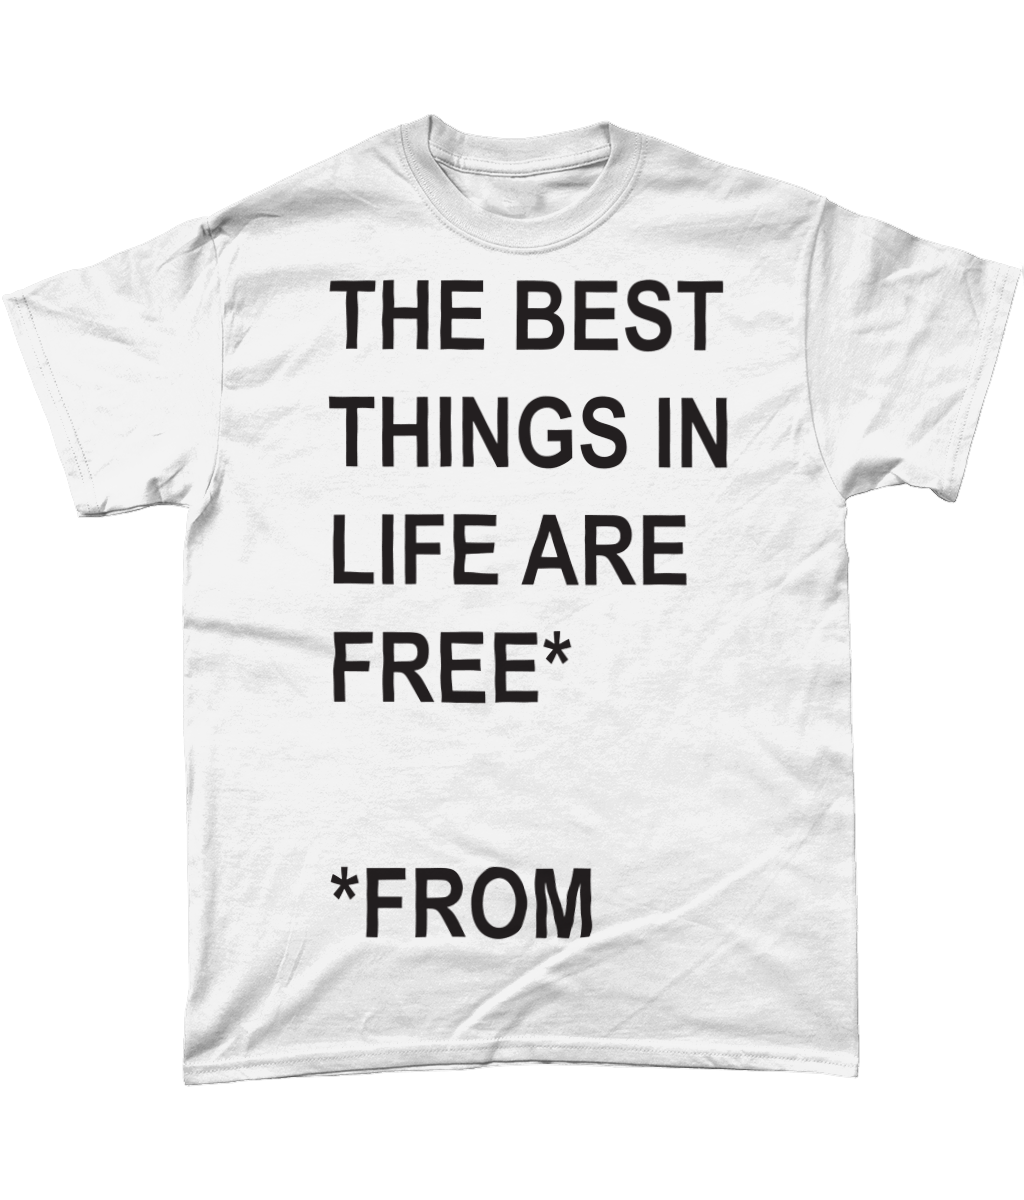 The Best Things In Life Are Free - T-Shirt